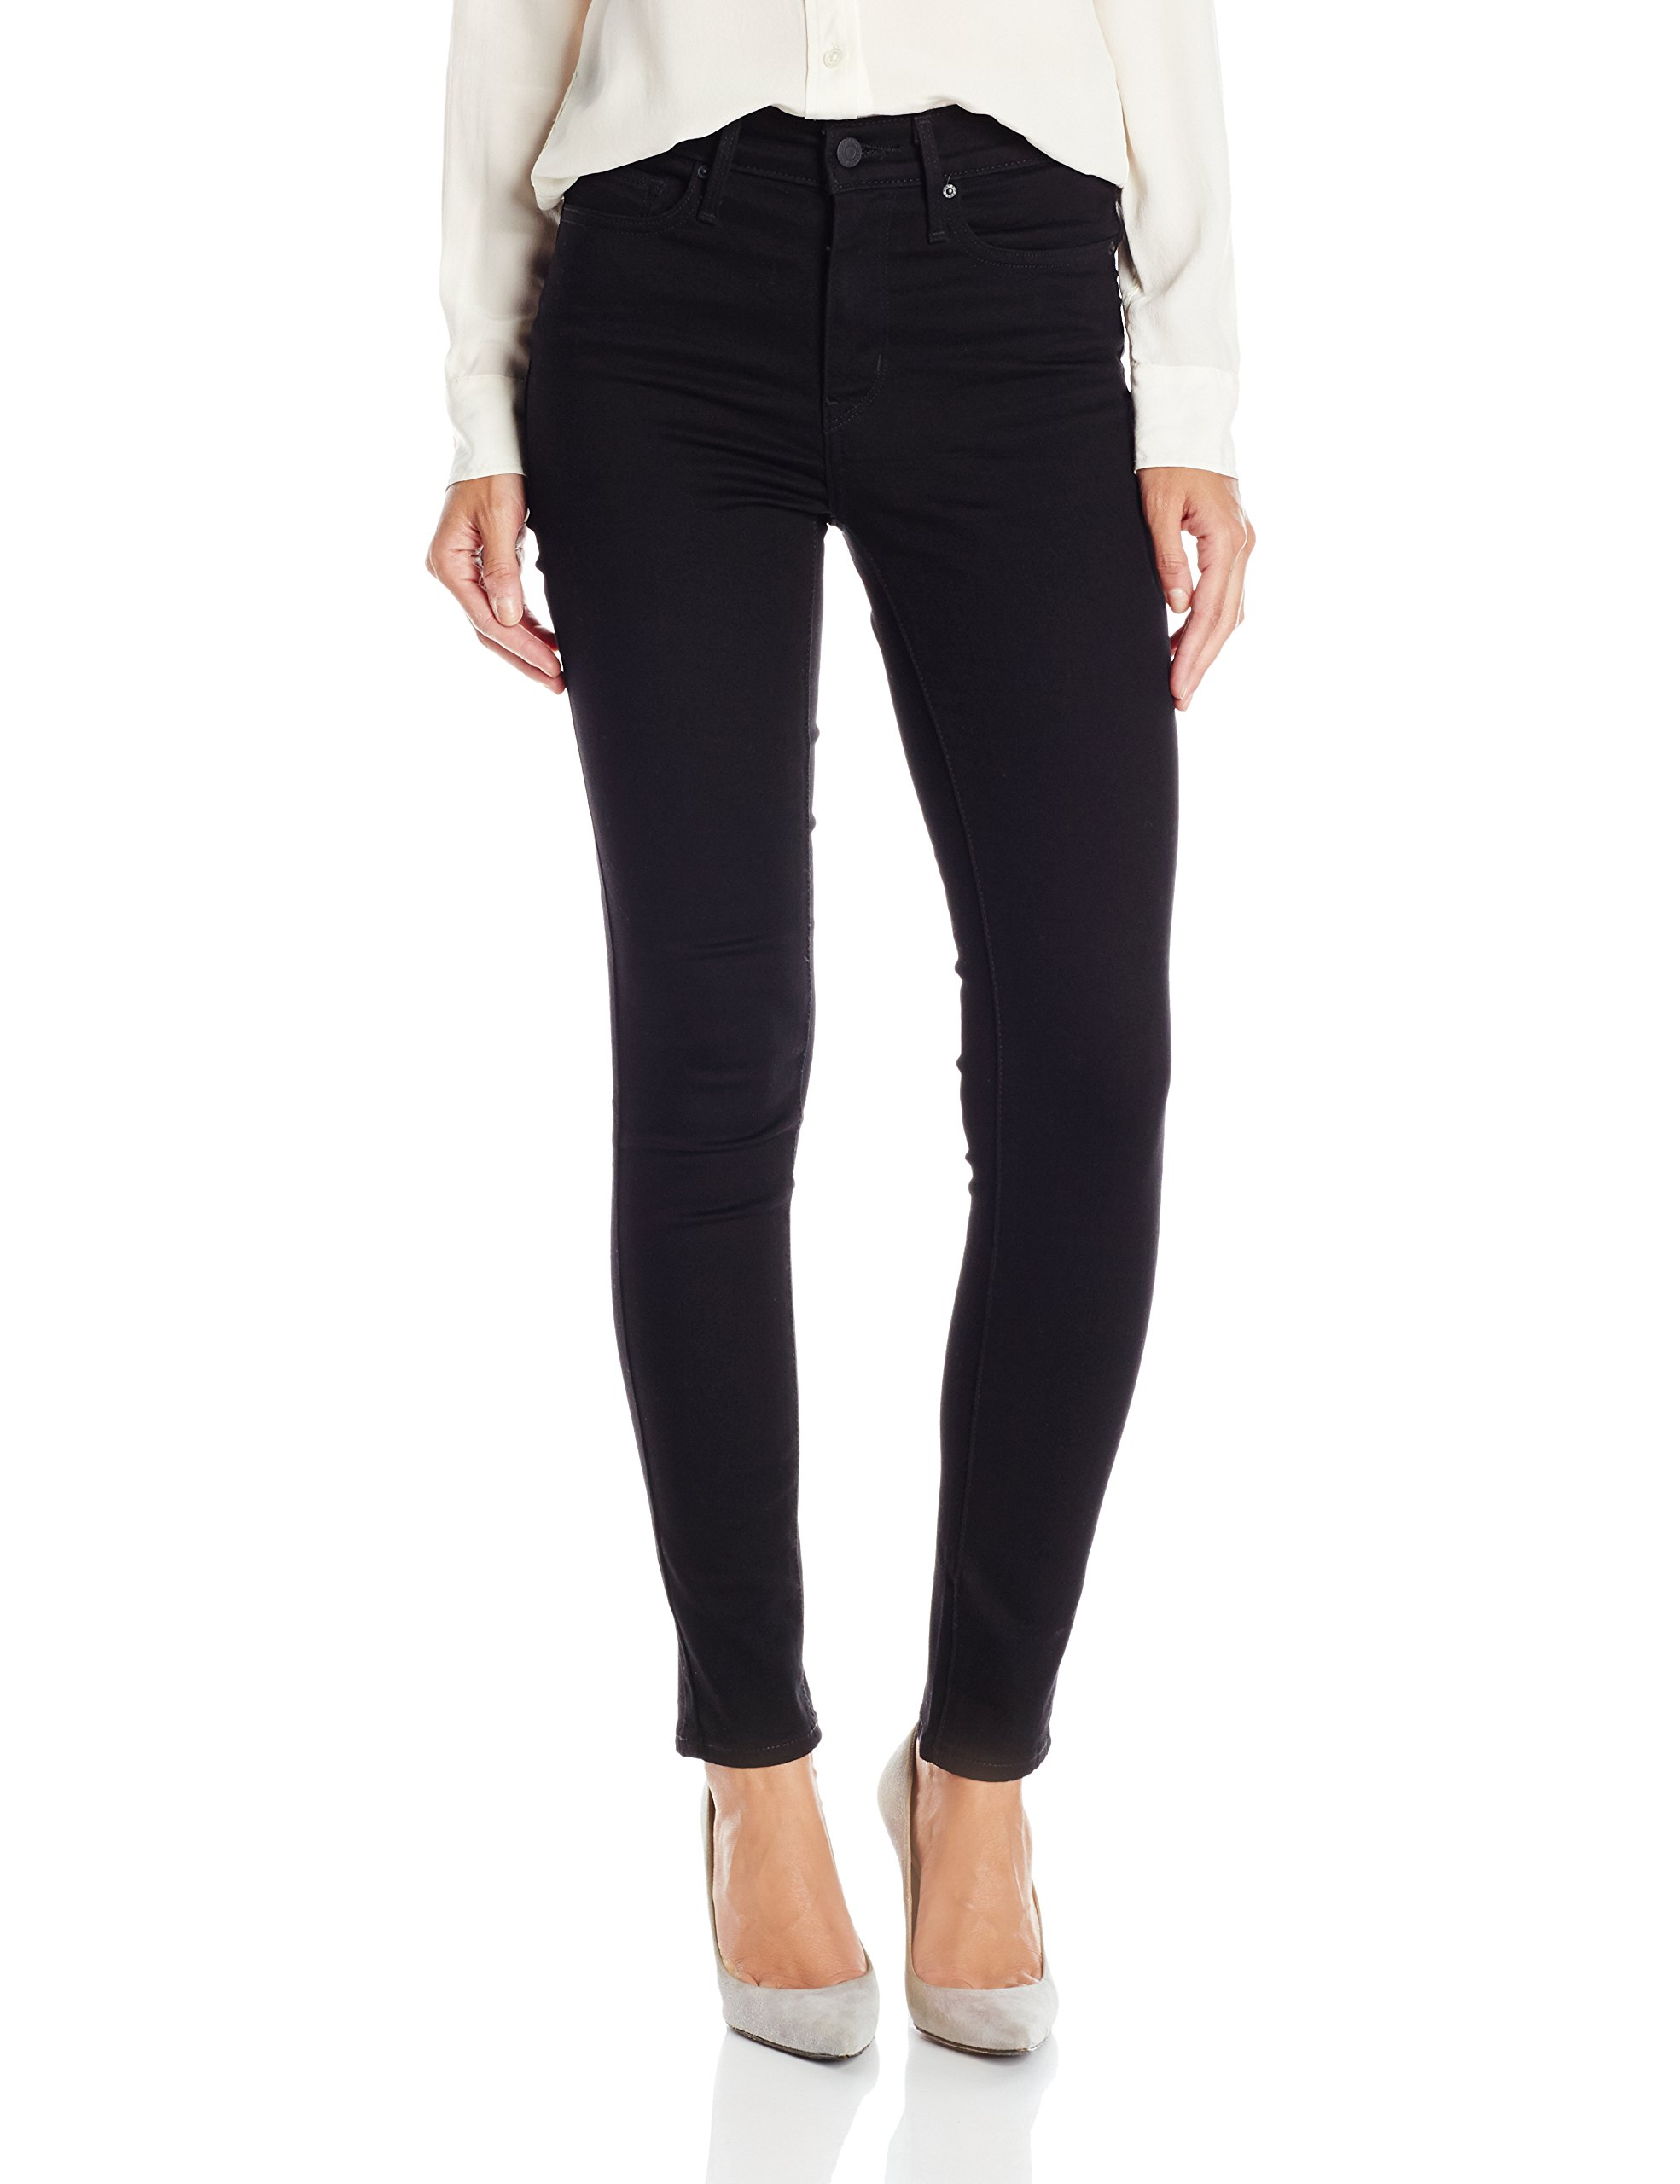 Levi's Women's Slimming Skinny Jean, Blackened Ash (65% Cotton, 17% Polyester, 16% Viscose, 2% Elastane), 29Wx30L